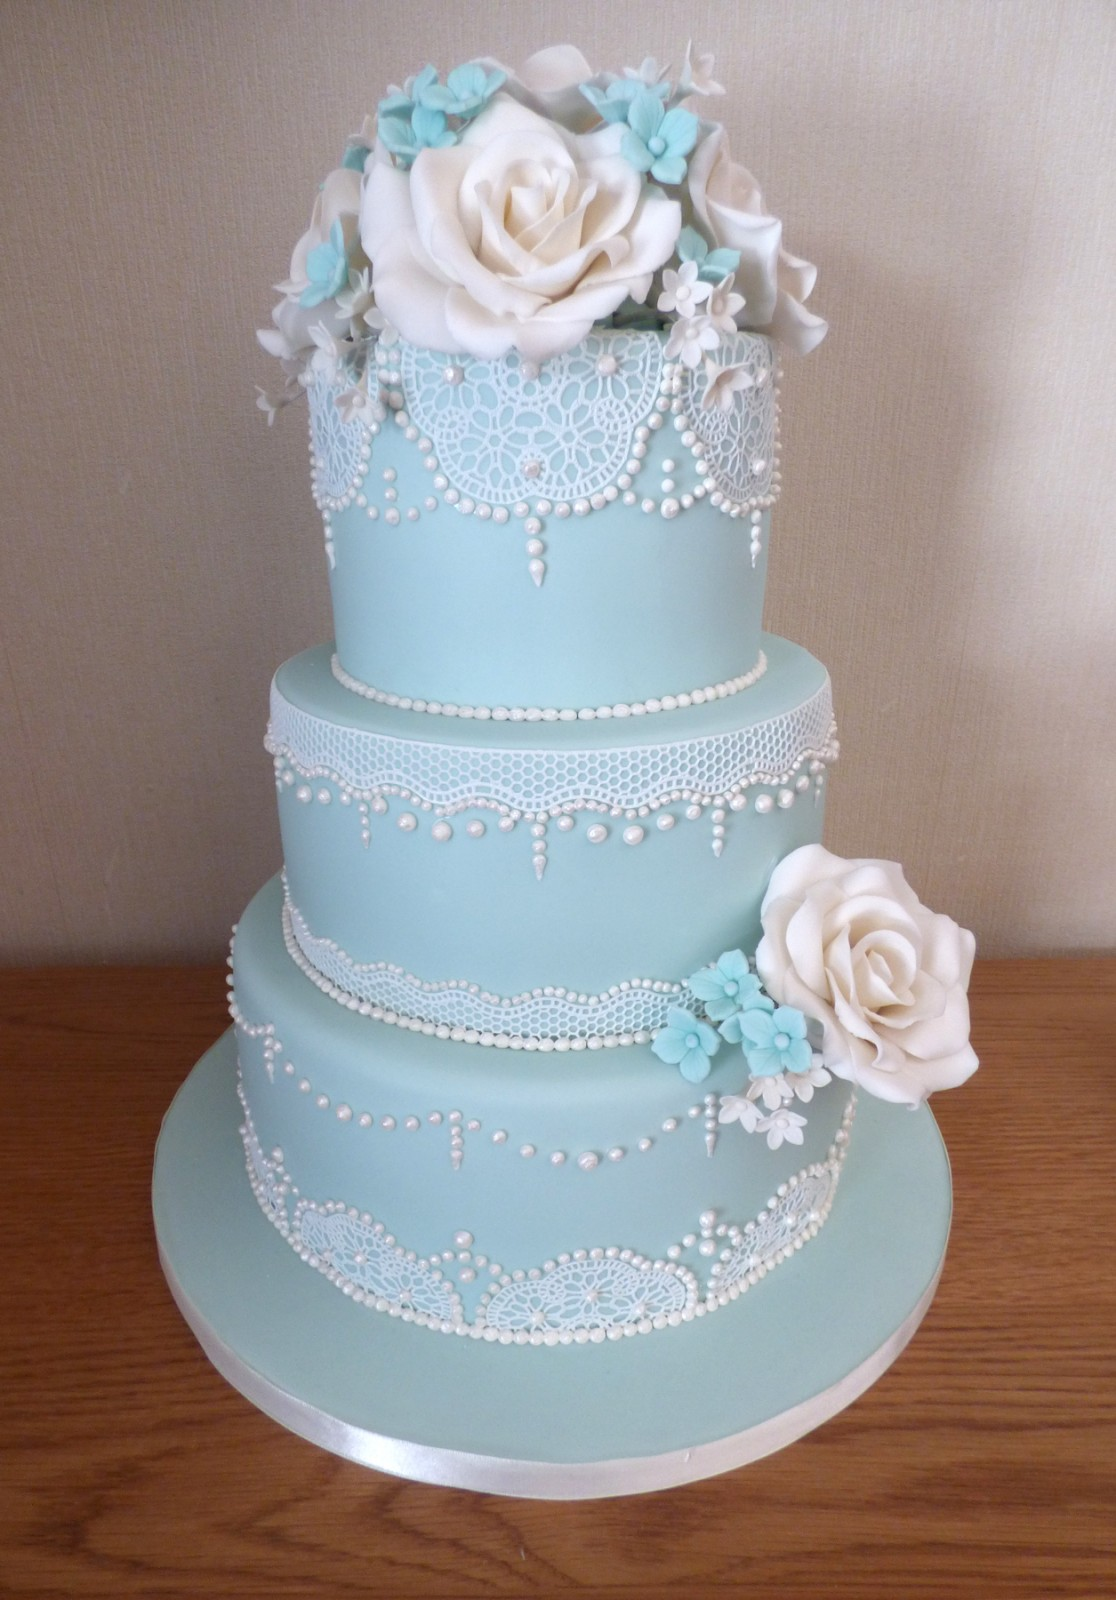 3 Tier Duck Egg Blue Elegant Lace Wedding Cake With White